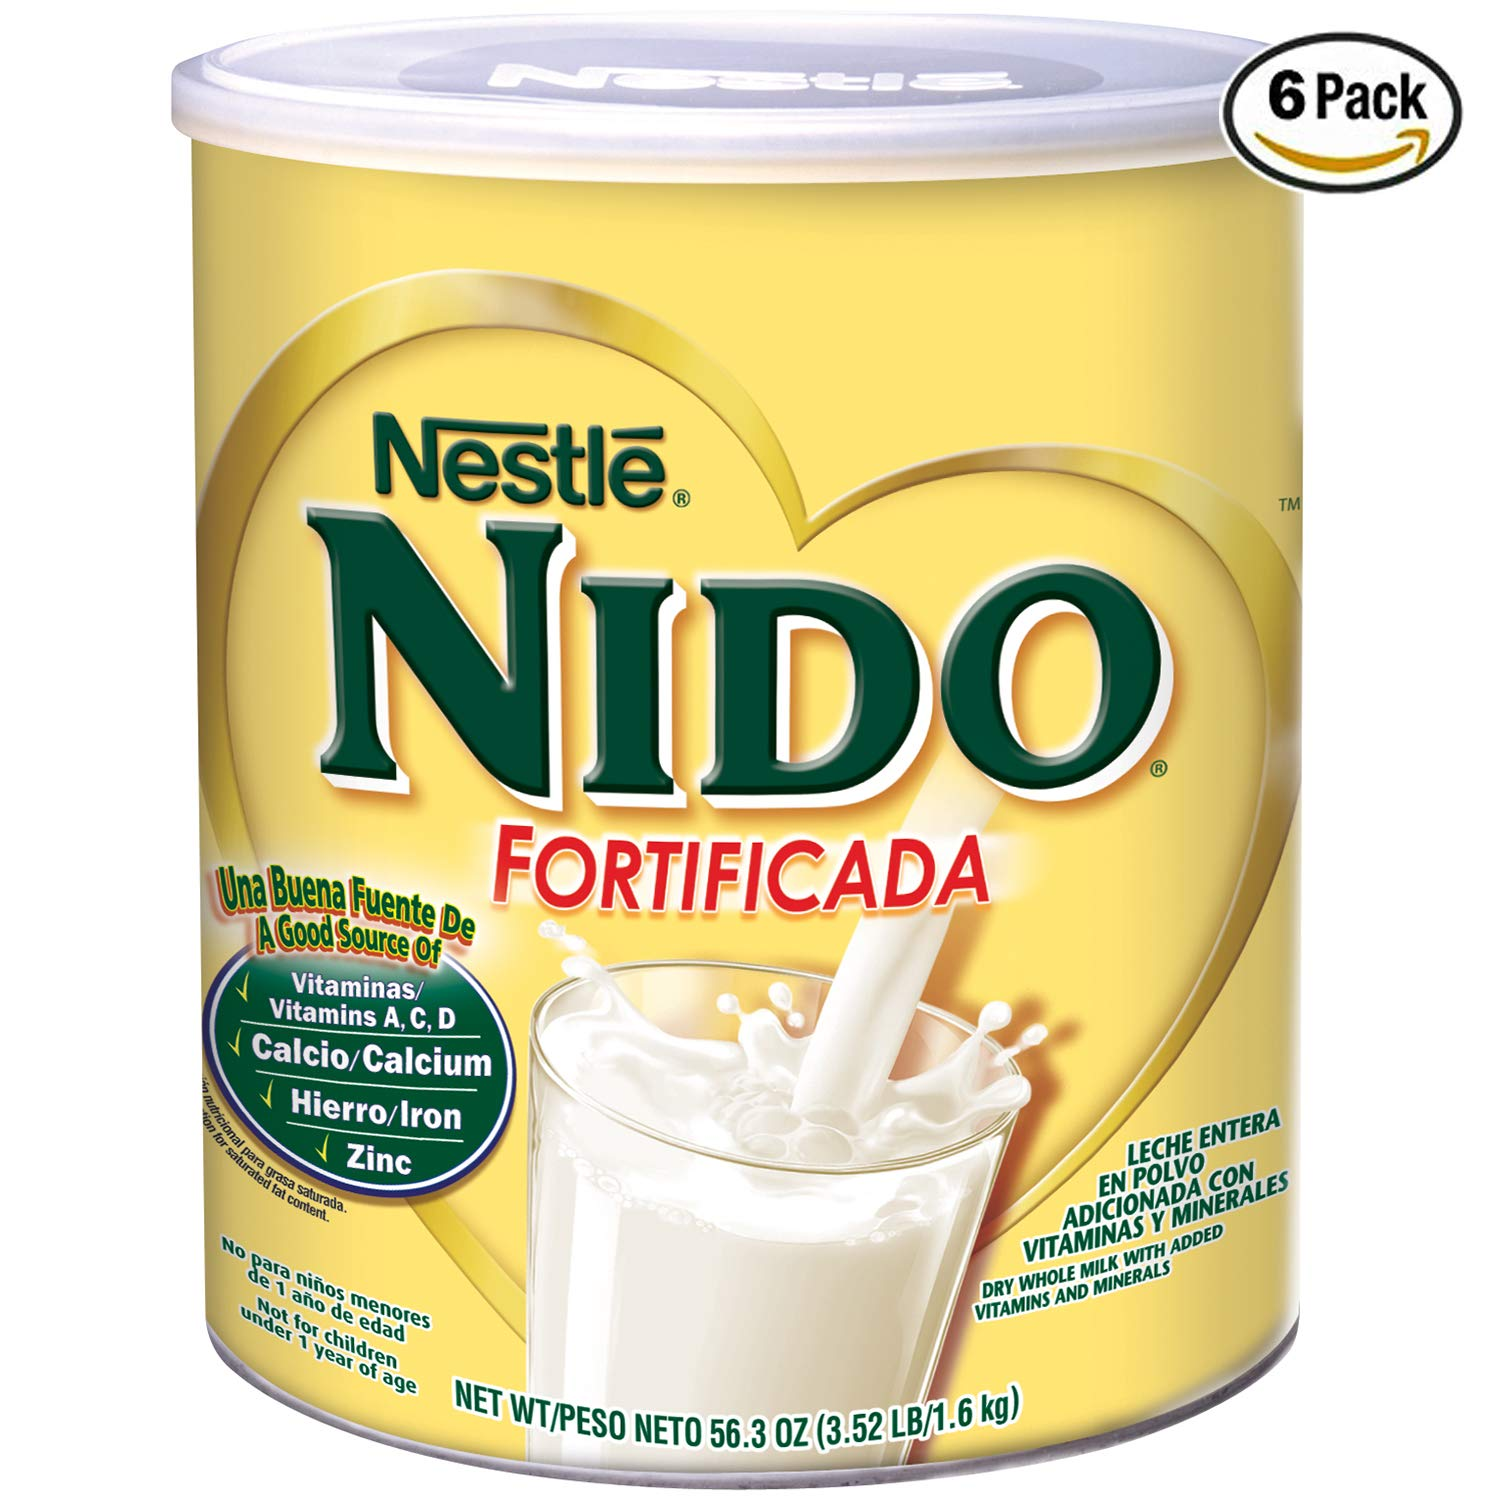 NESTLE NIDO Fortificada Dry Milk 56.3 Ounce. Canister (6 Pack)